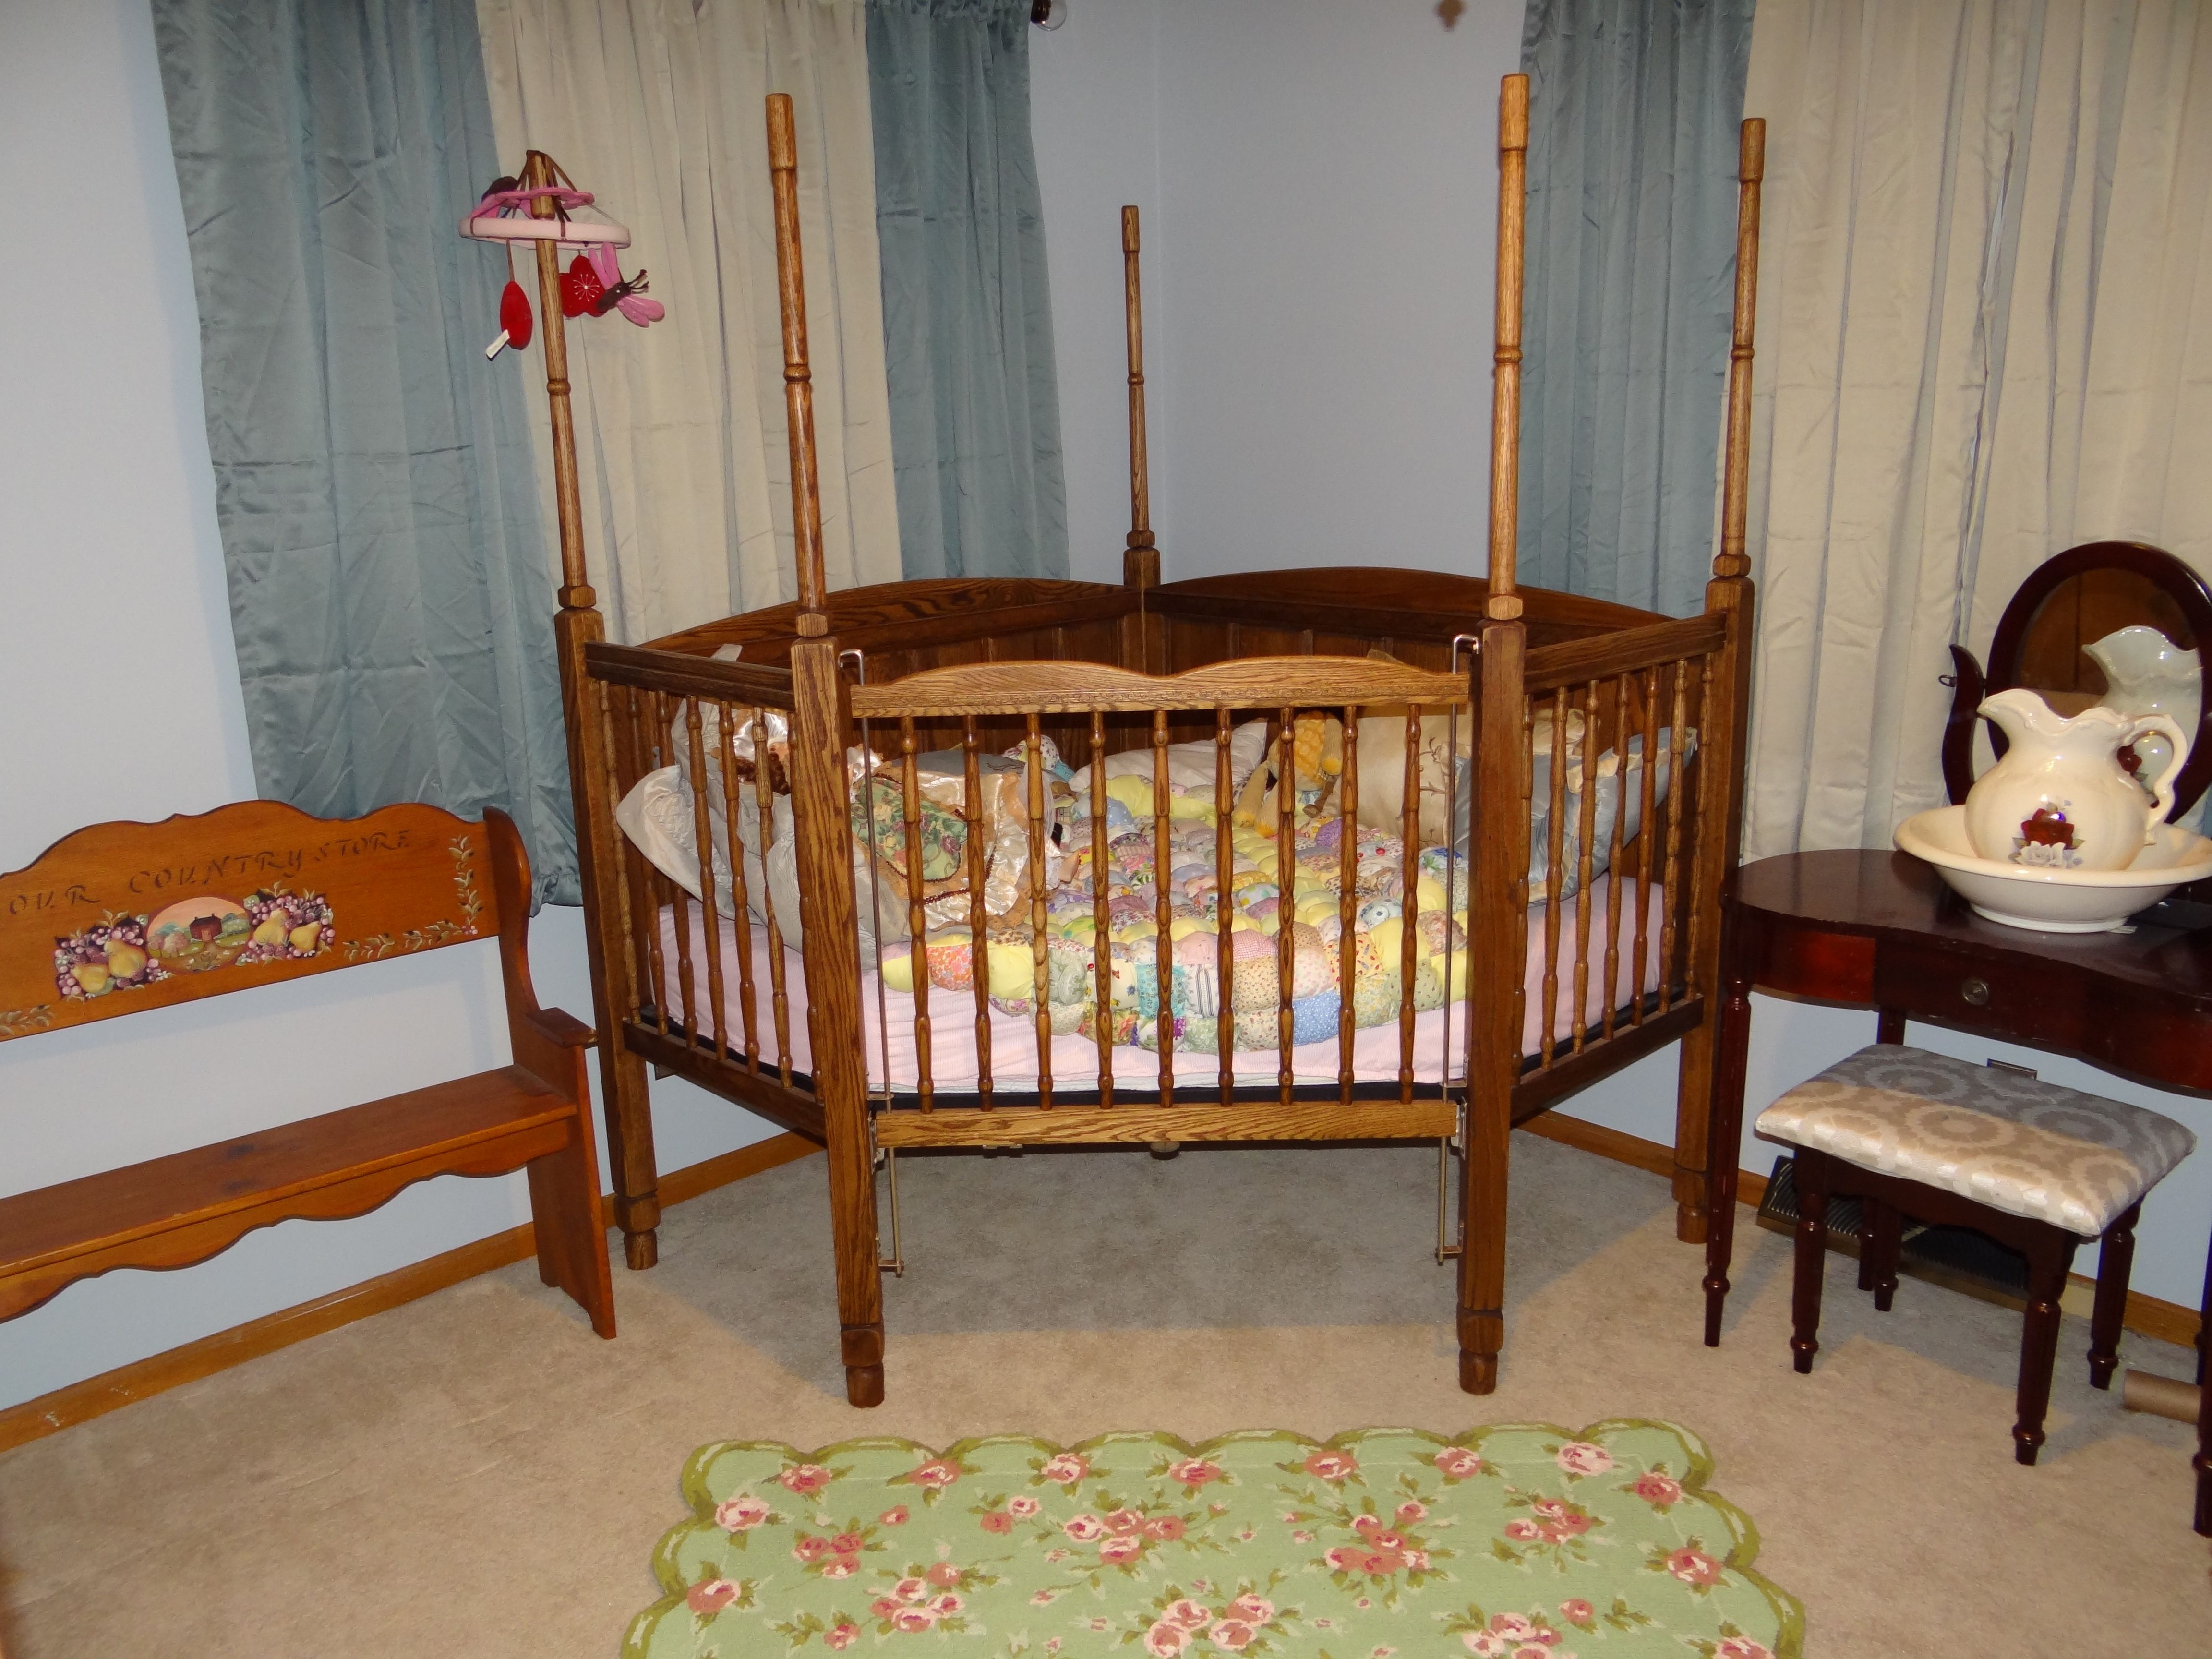 Crib for sale kijiji toronto - White Crib For Sale Kijiji Crib Spring Frame For Sale Cribs